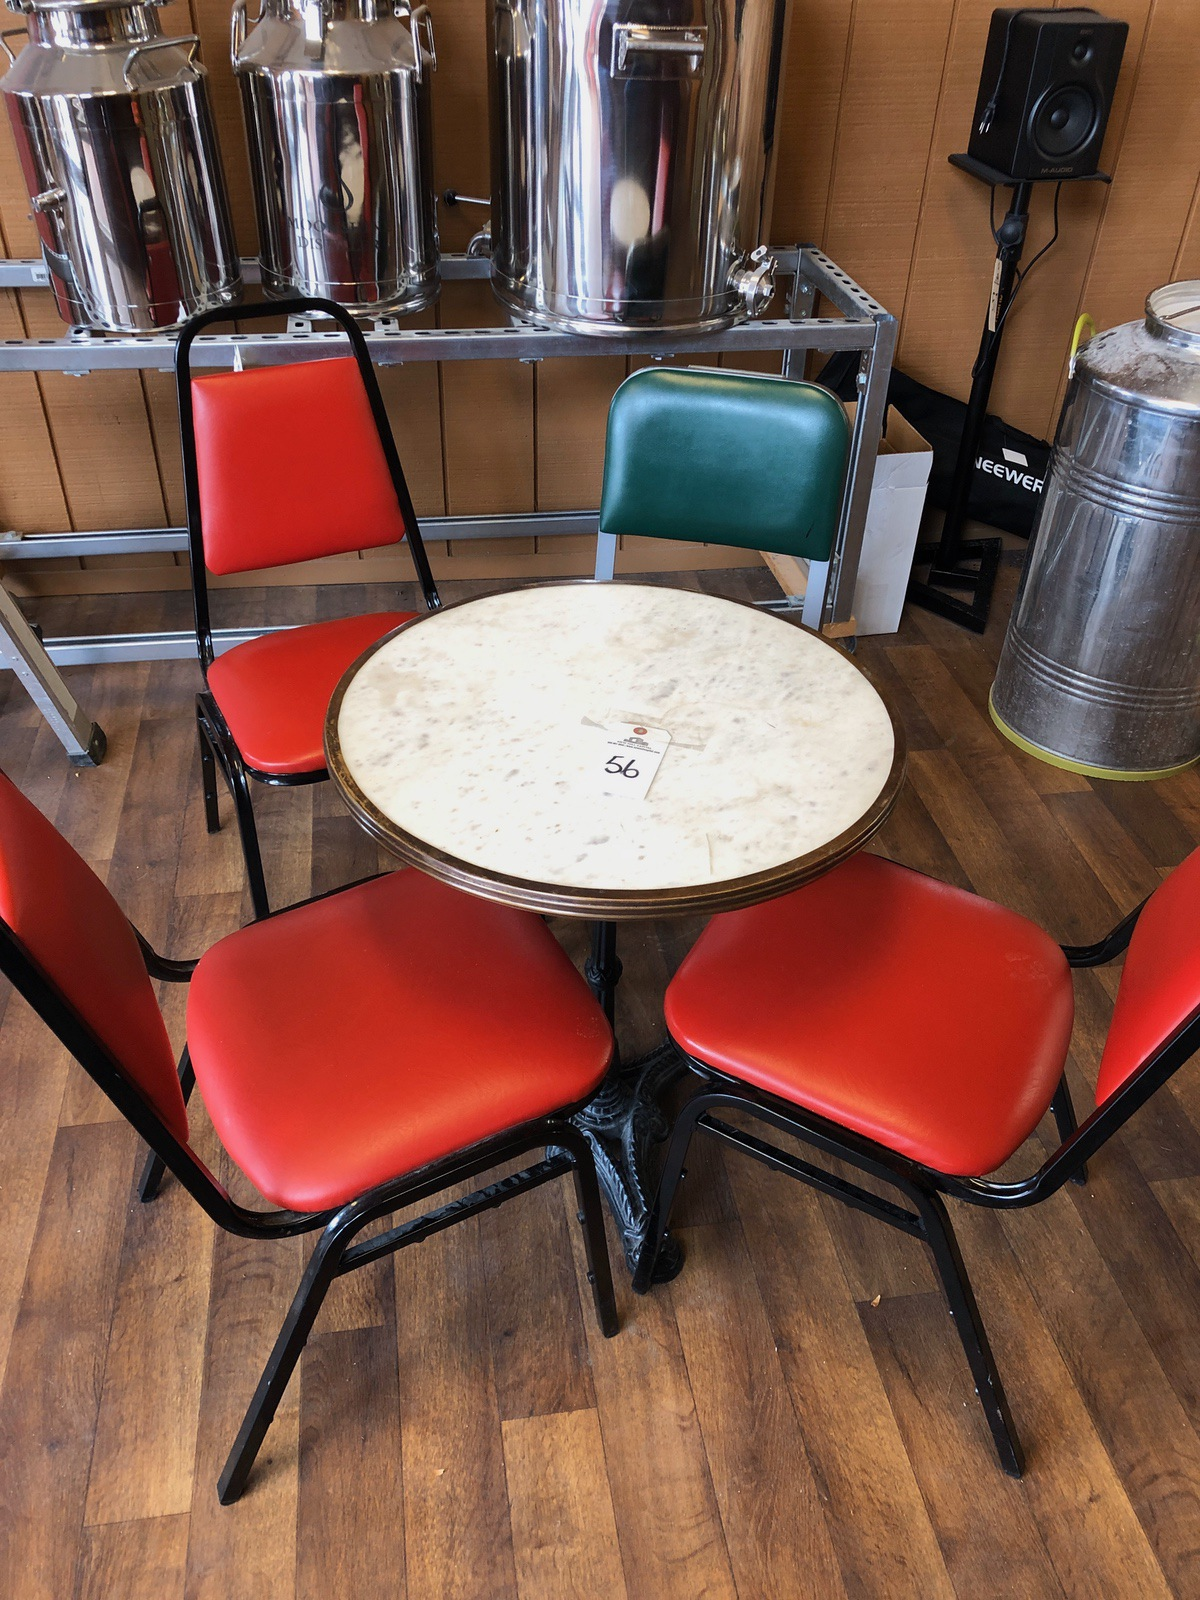 Lot 56 - Lot of Bistro Tables (2) and Chairs (5) | Rig Fee: $50 or HC